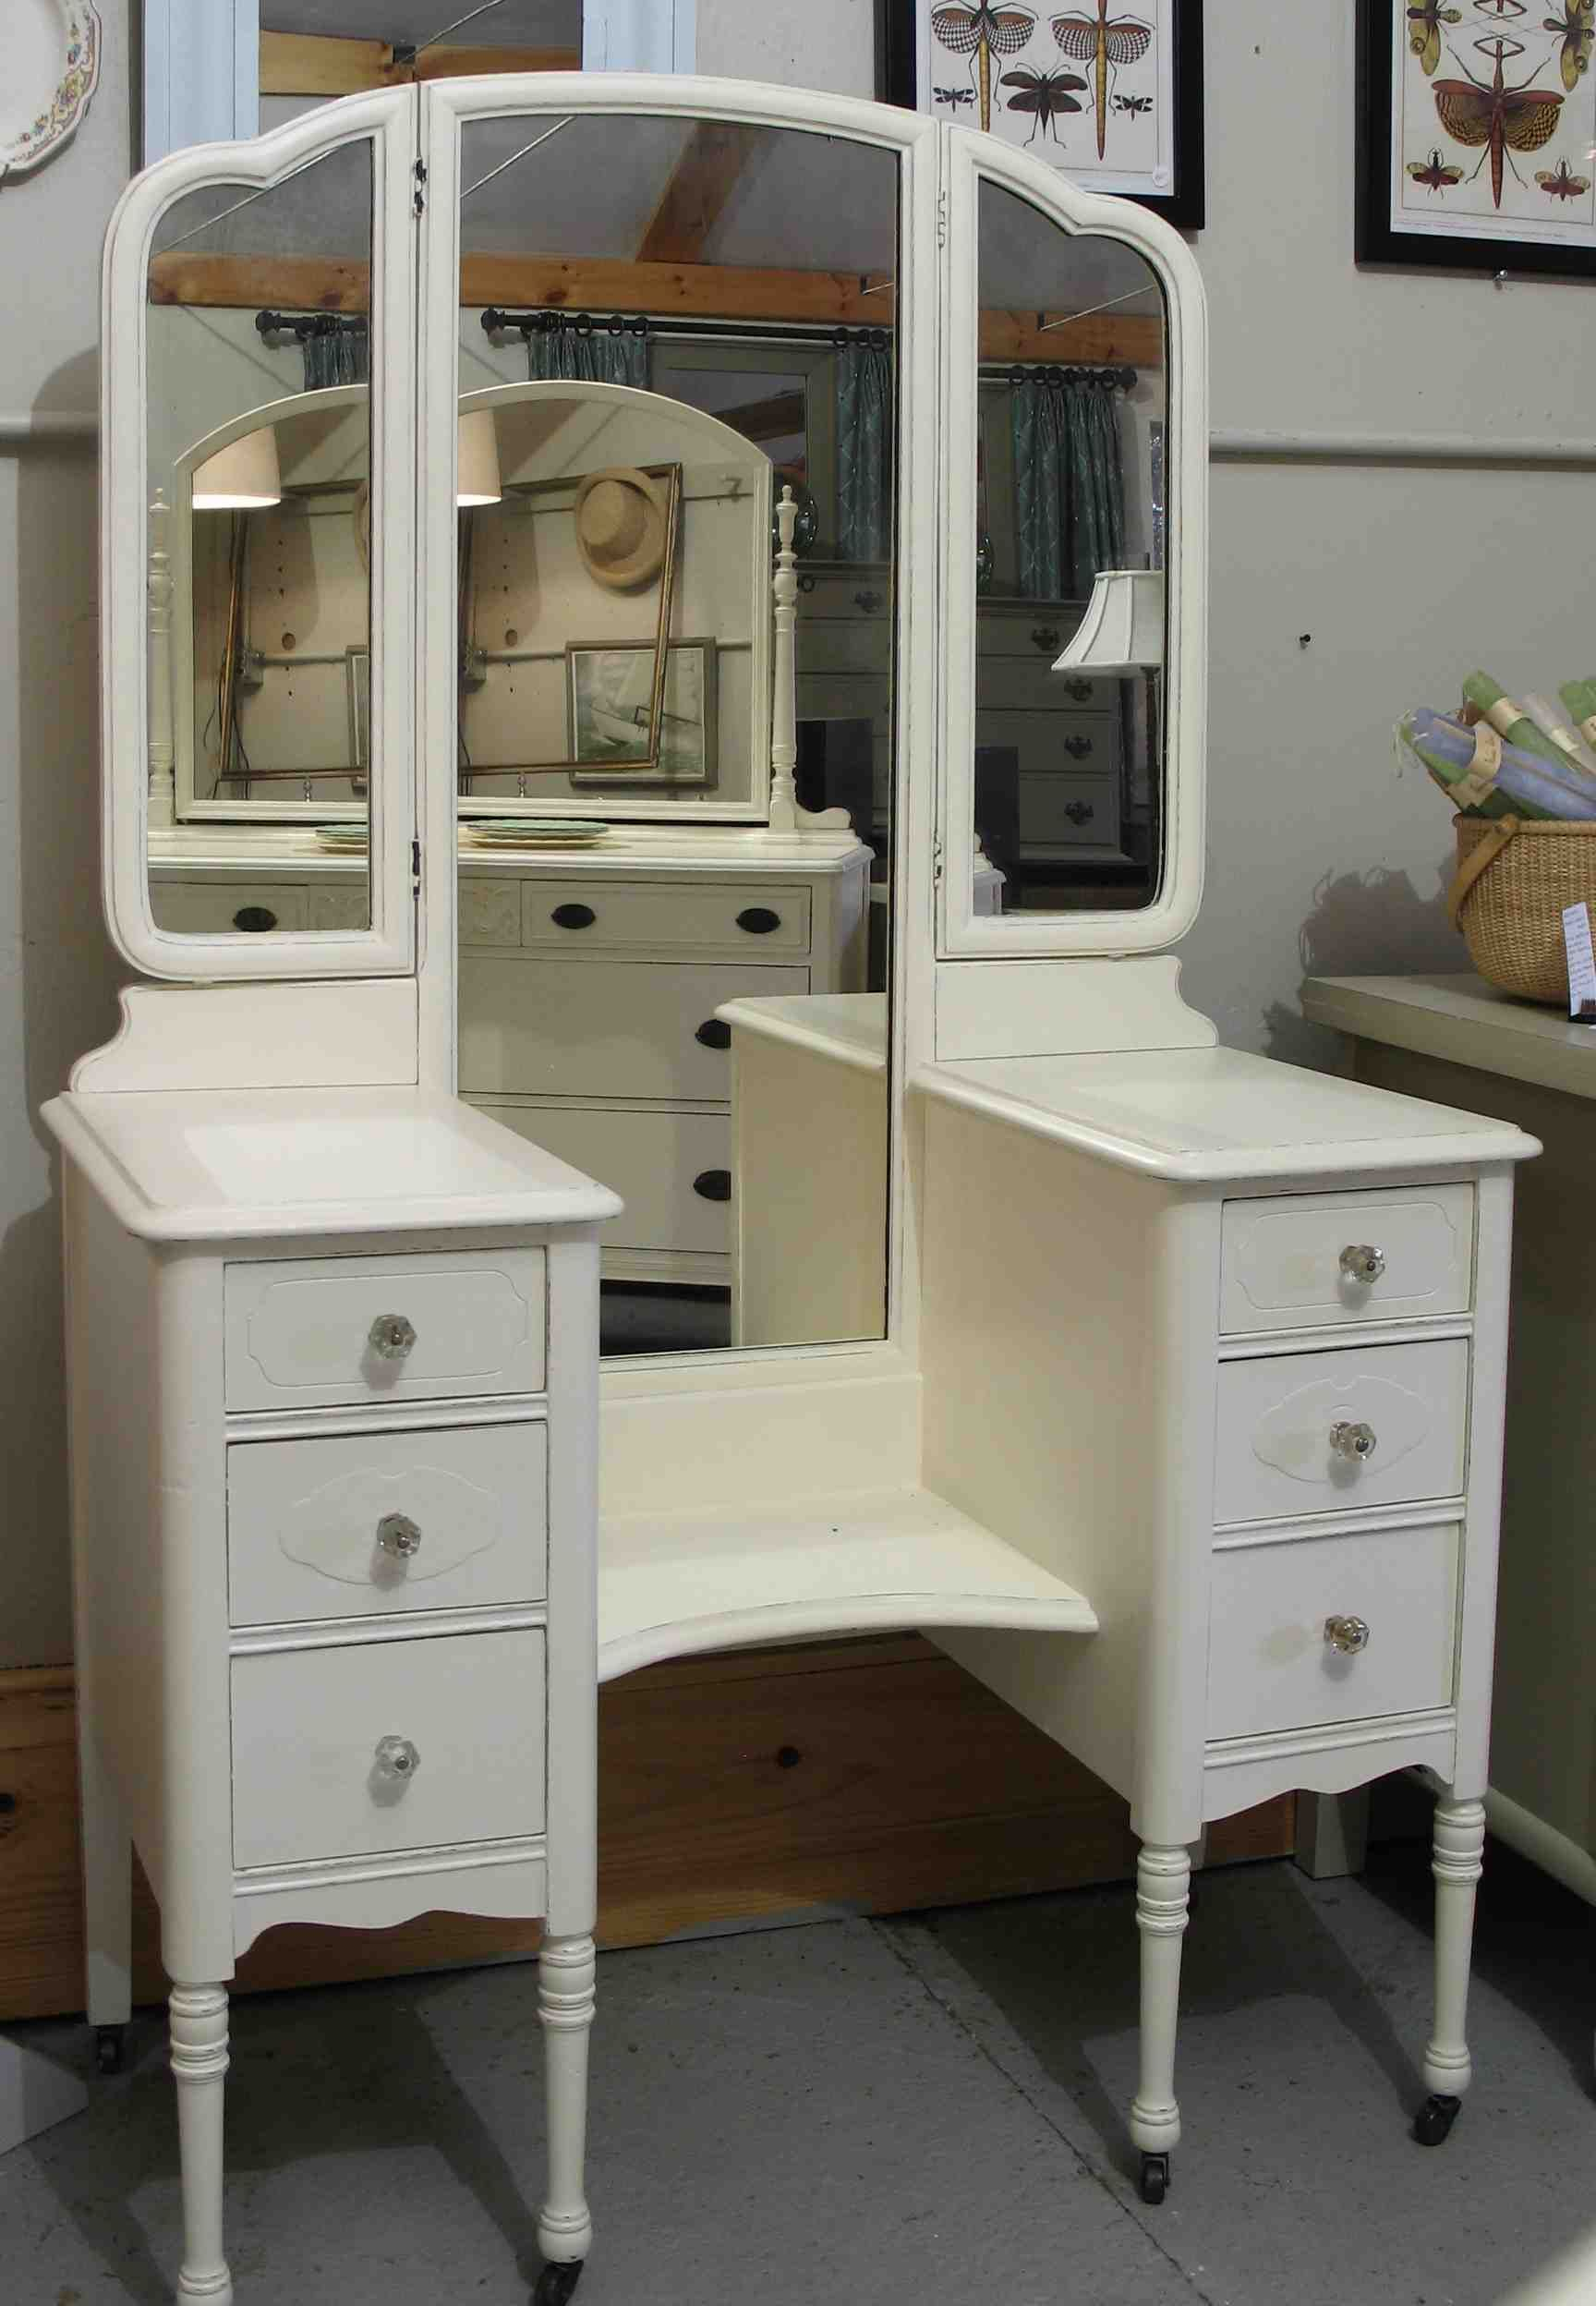 Bedroom dressing table decorating ideas - Drop Well Vanity Used As A Dressing Table Painted Cottage White With Glass Knobs And Tri Fold Mirror The Two Side Mirrors Fold In For Different Angles